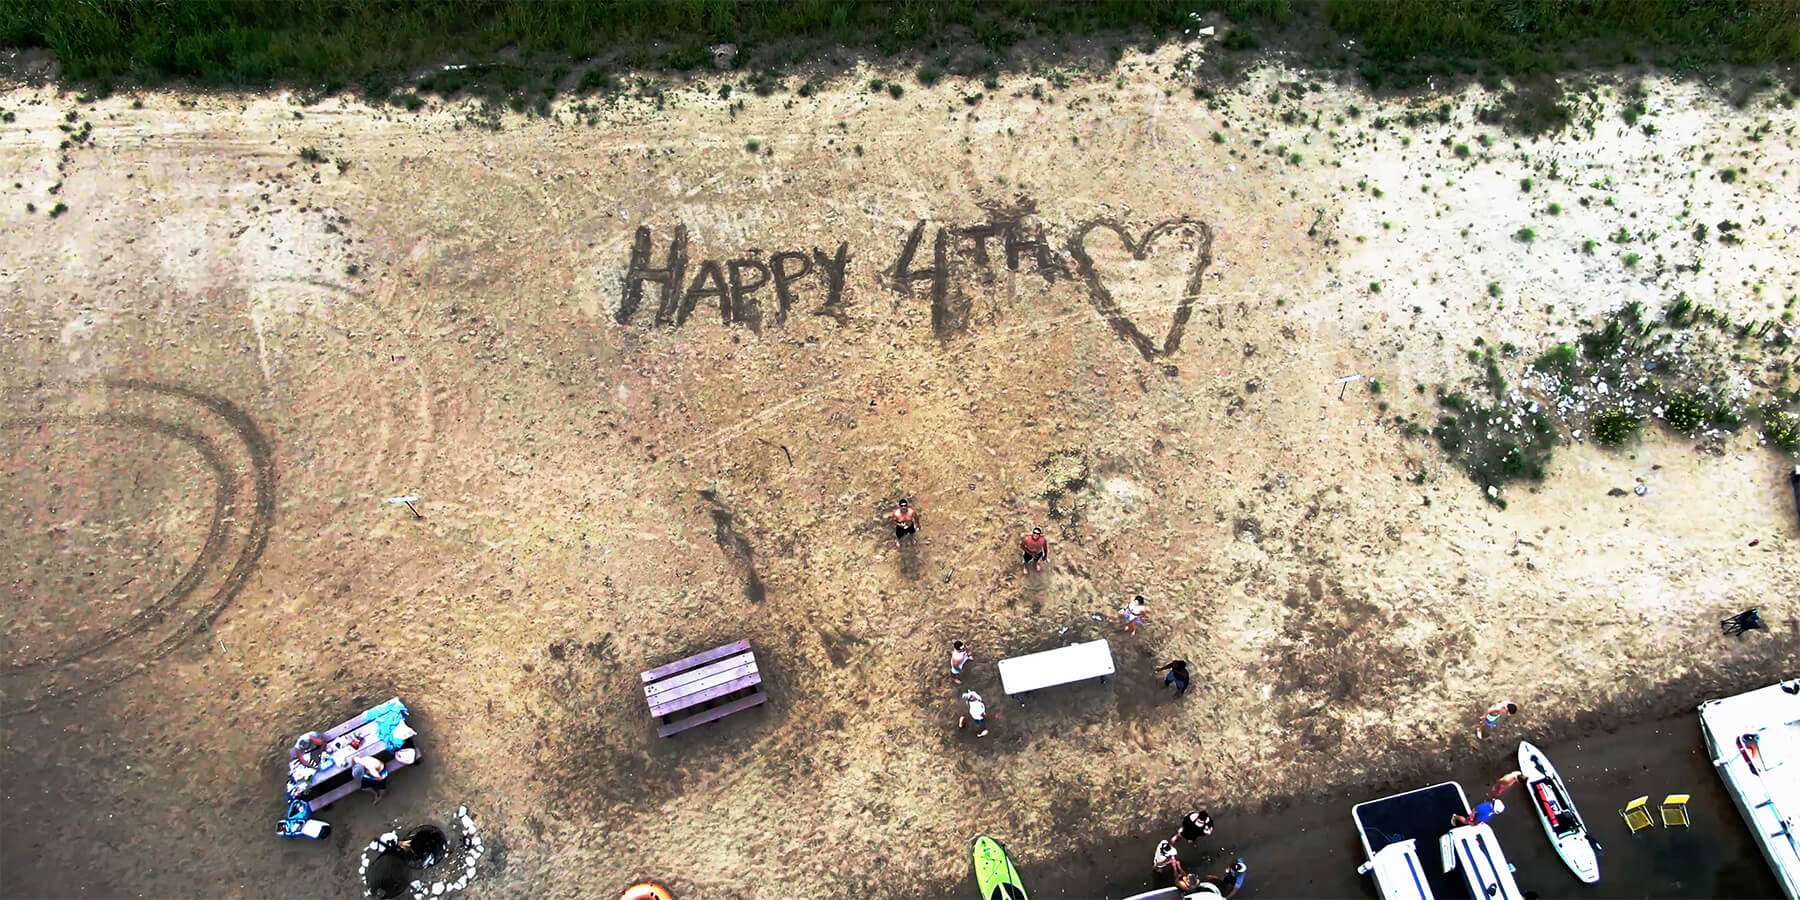 Drone Footage of Beach with Happy 4th Written in the Sand